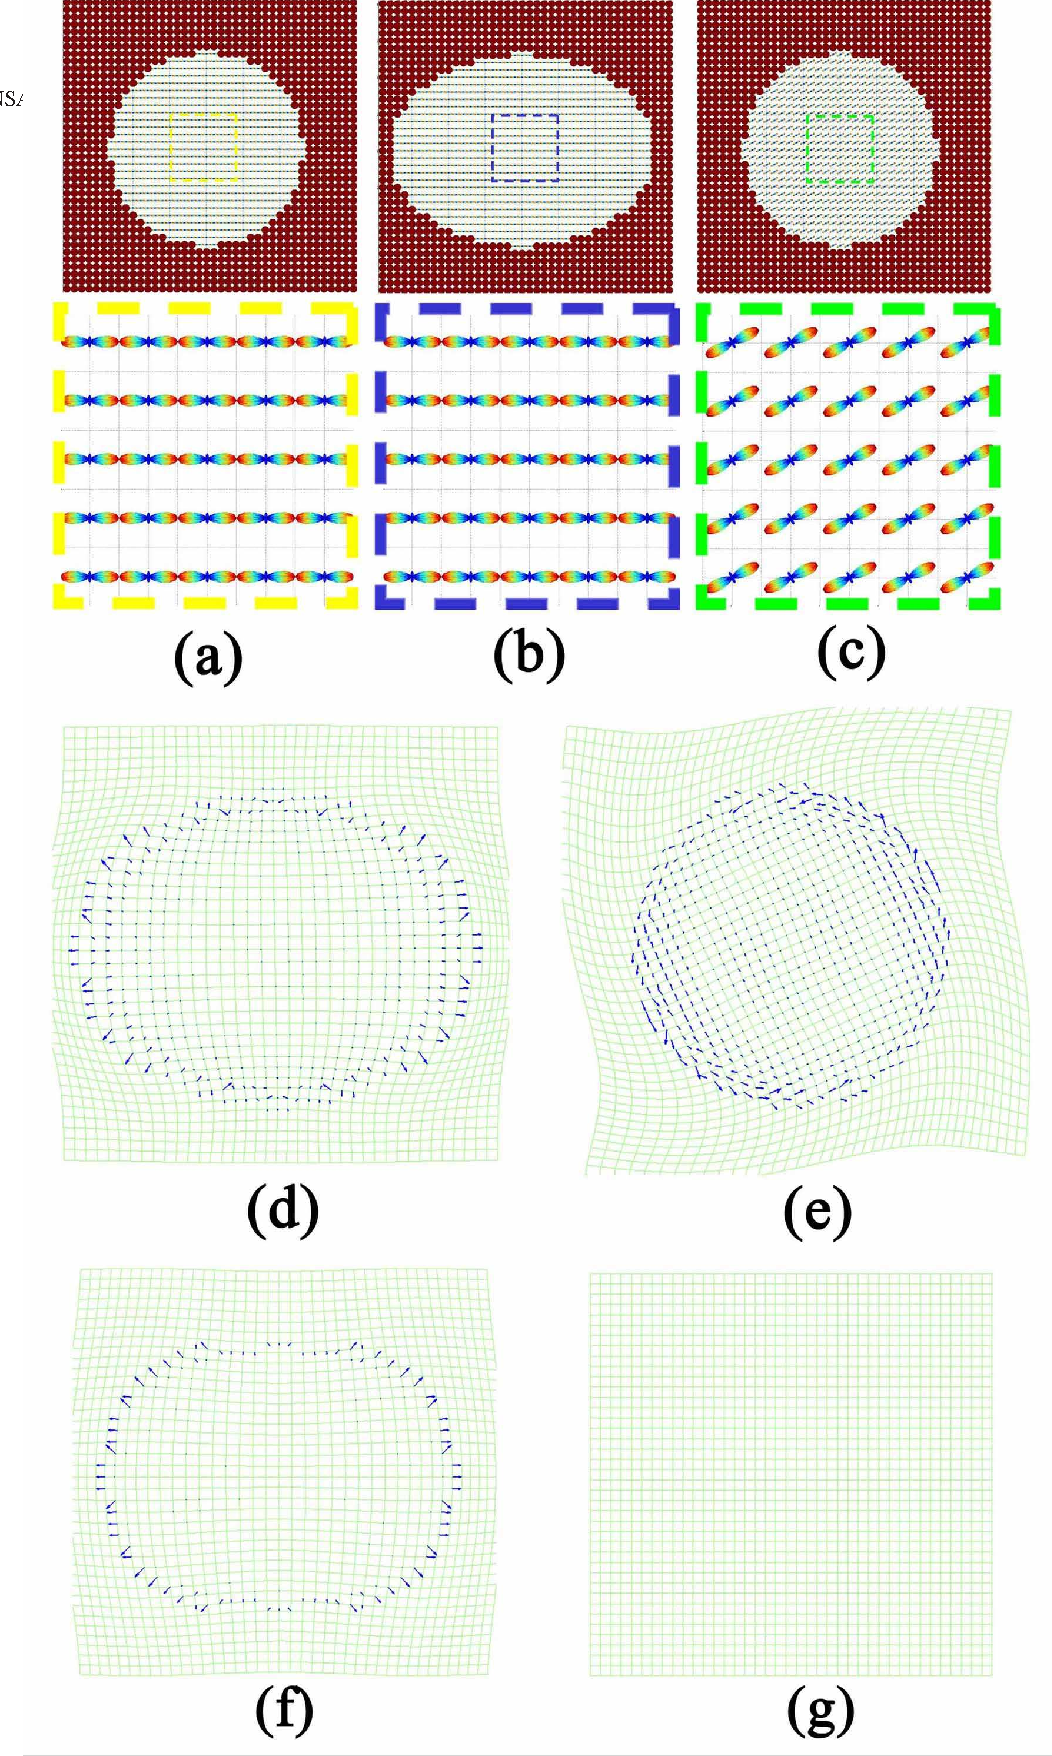 Figure 2 for Diffeomorphic Metric Mapping of High Angular Resolution Diffusion Imaging based on Riemannian Structure of Orientation Distribution Functions